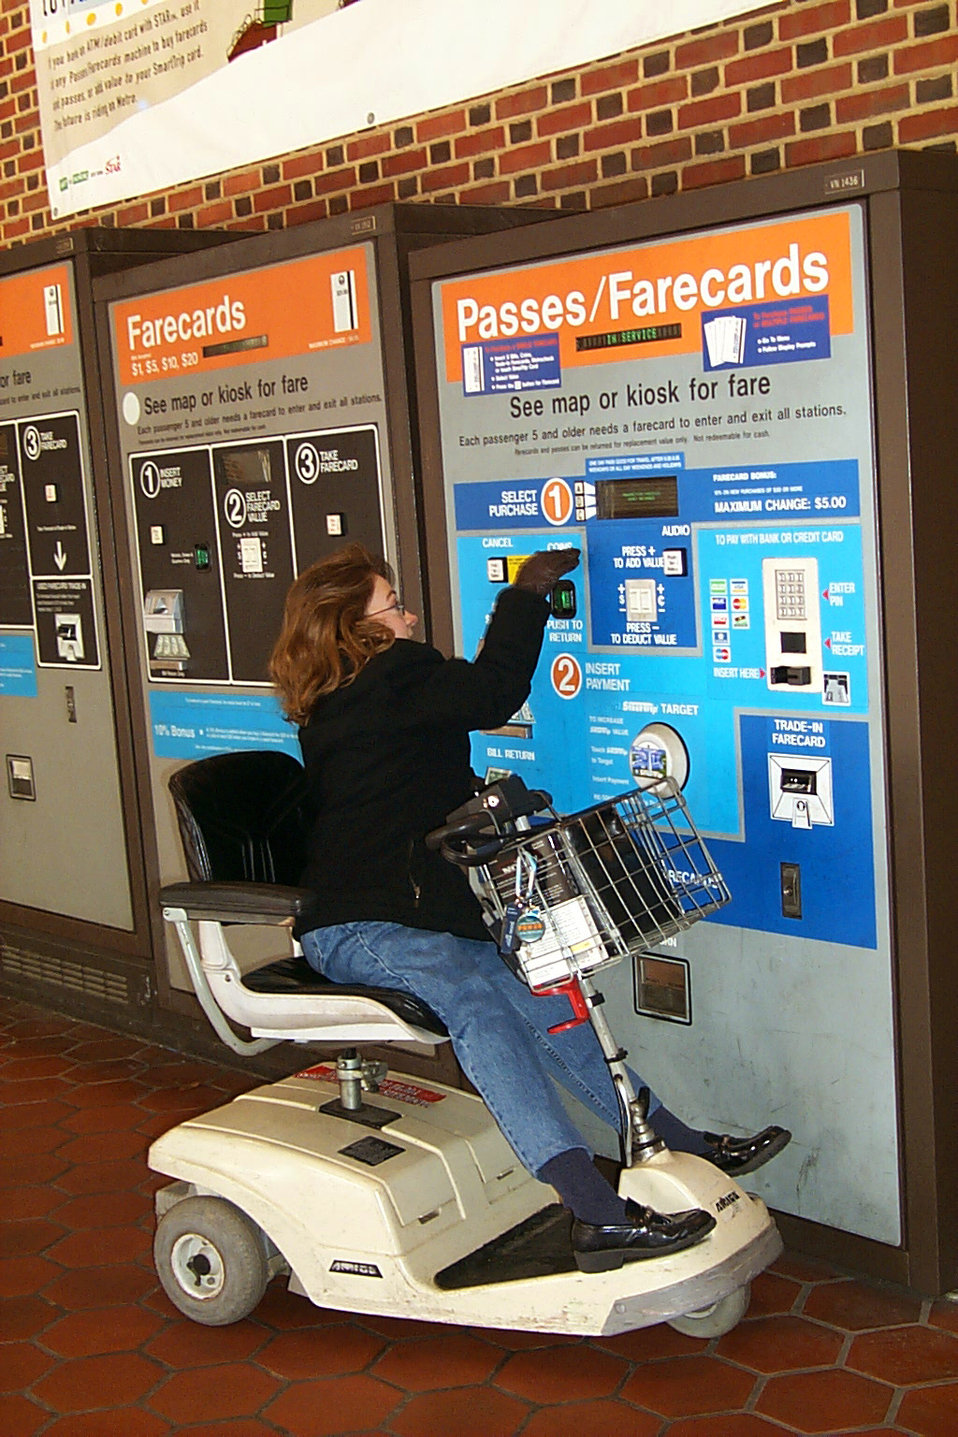 Depicted in this 2004 image was a wheelchair-seated woman who was in the process of purchasing a ticket from an automatic ticket dispensing